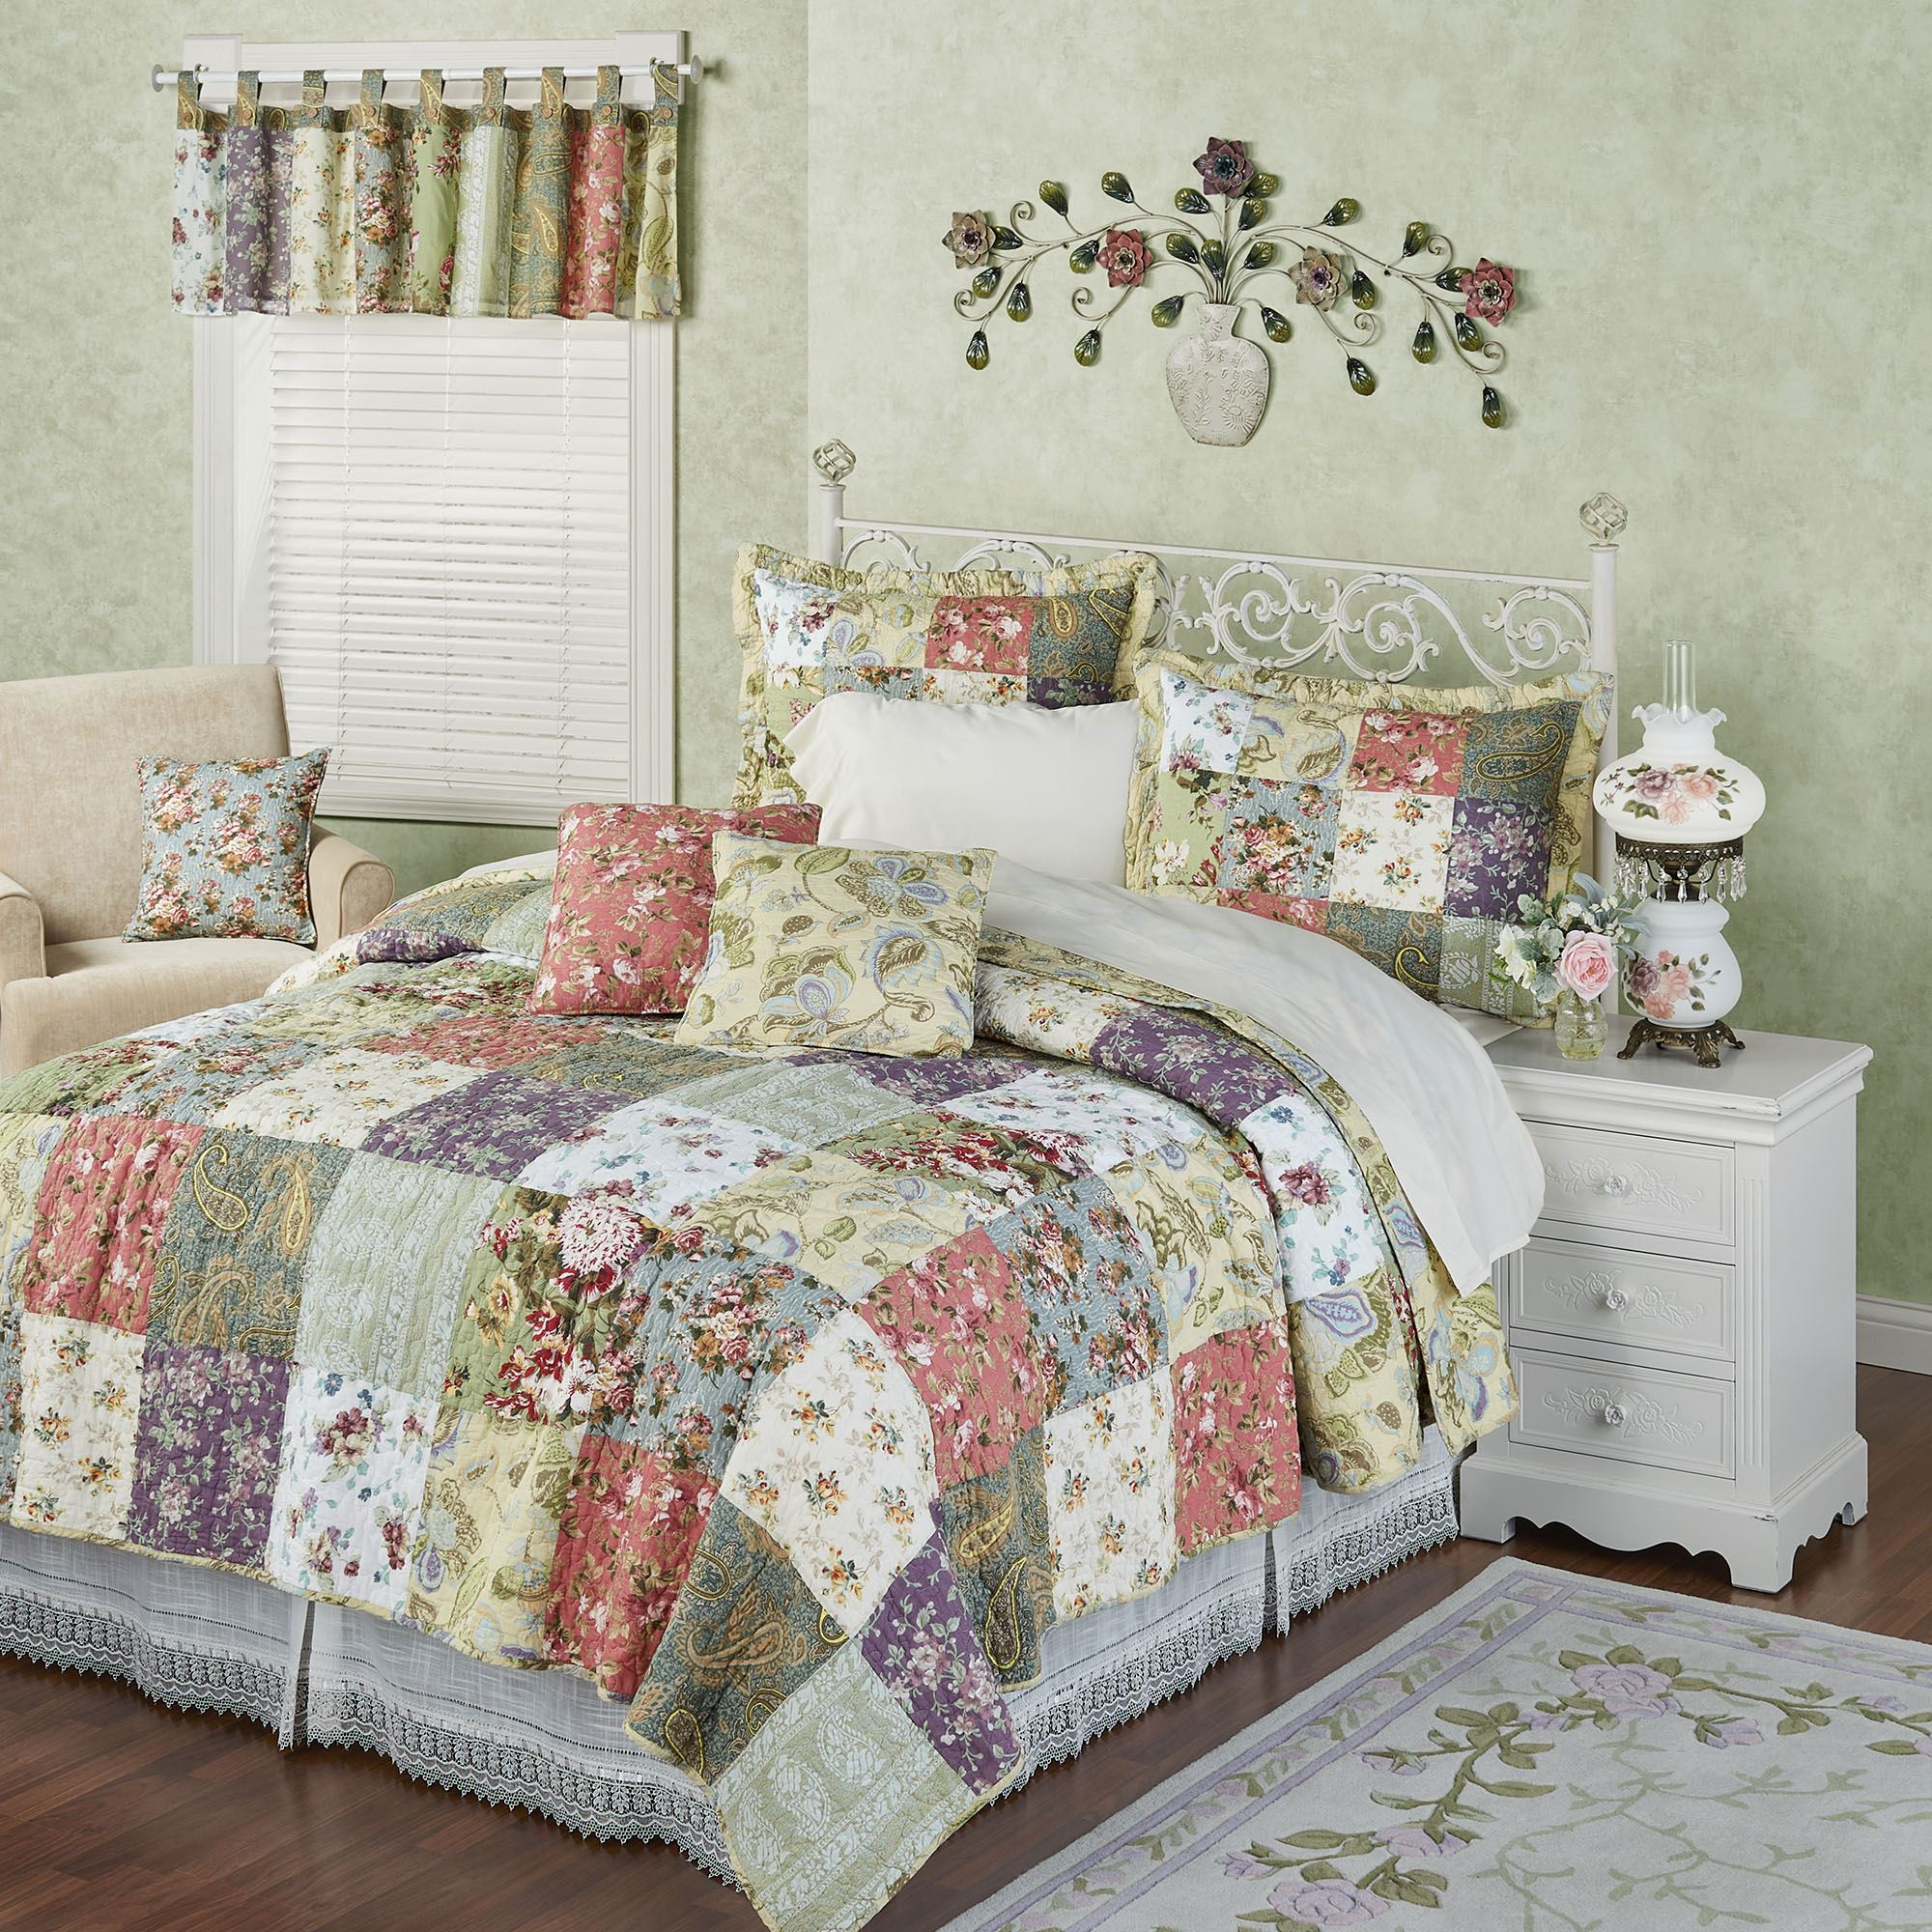 chausub size coverlet pillowcase item king quilt bedspread set in garden on cover korea from cotton home quilted bed sheets floral quilts patchwork